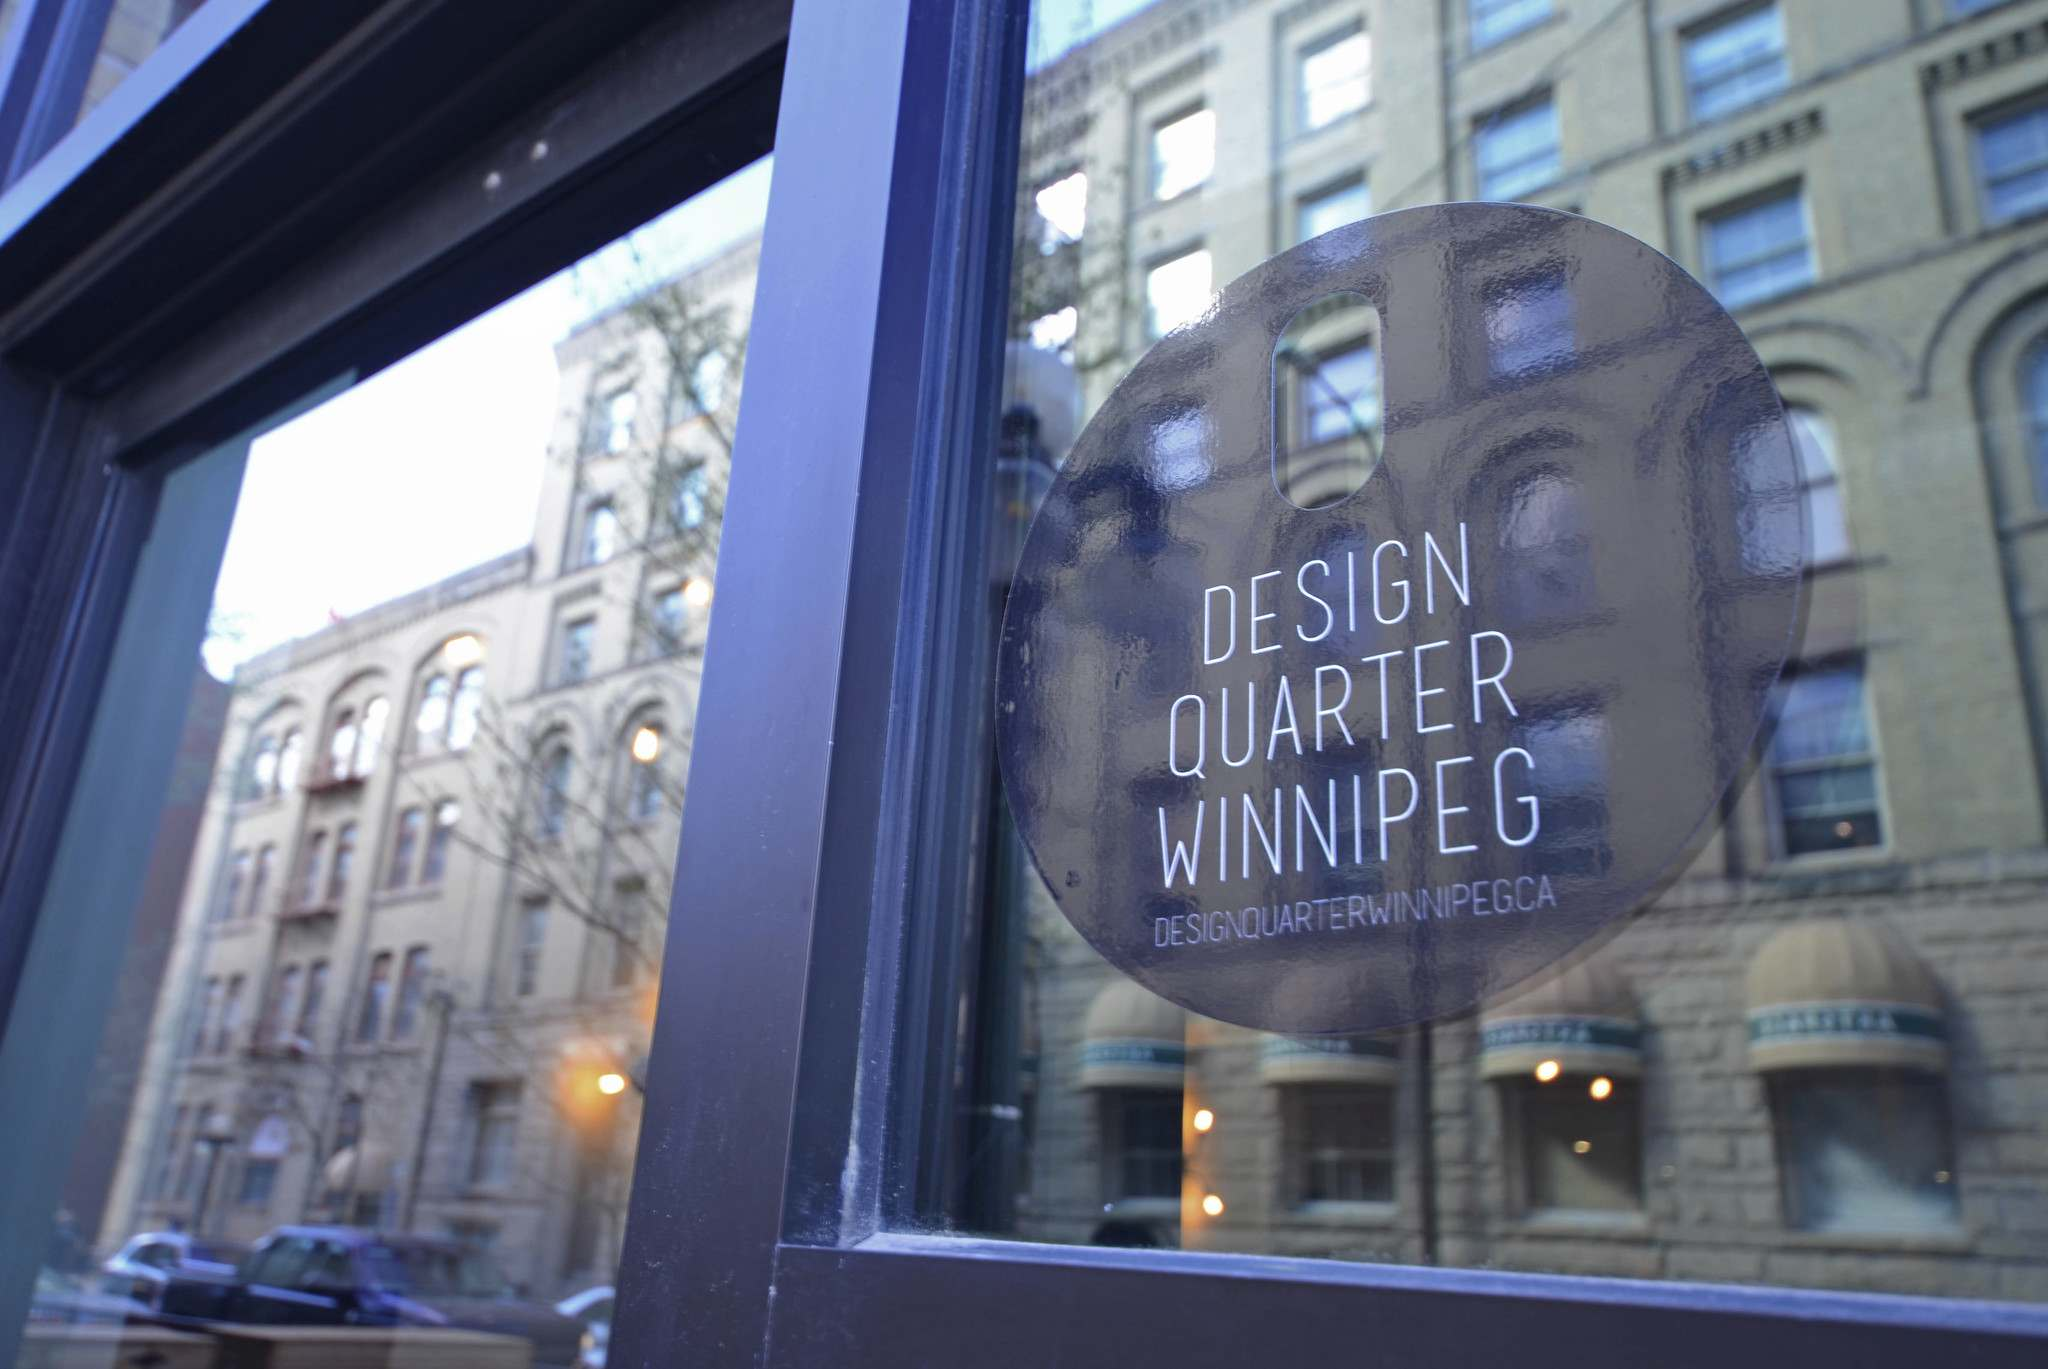 BRENT BELLAMY / WINNIPEG FREE PRESS</p><p>Design Quarter Winnipeg is a grassroots initiative that&rsquo;s pushing to make downtown Winnipeg&rsquo;s artistic community a tourism destination.</p>